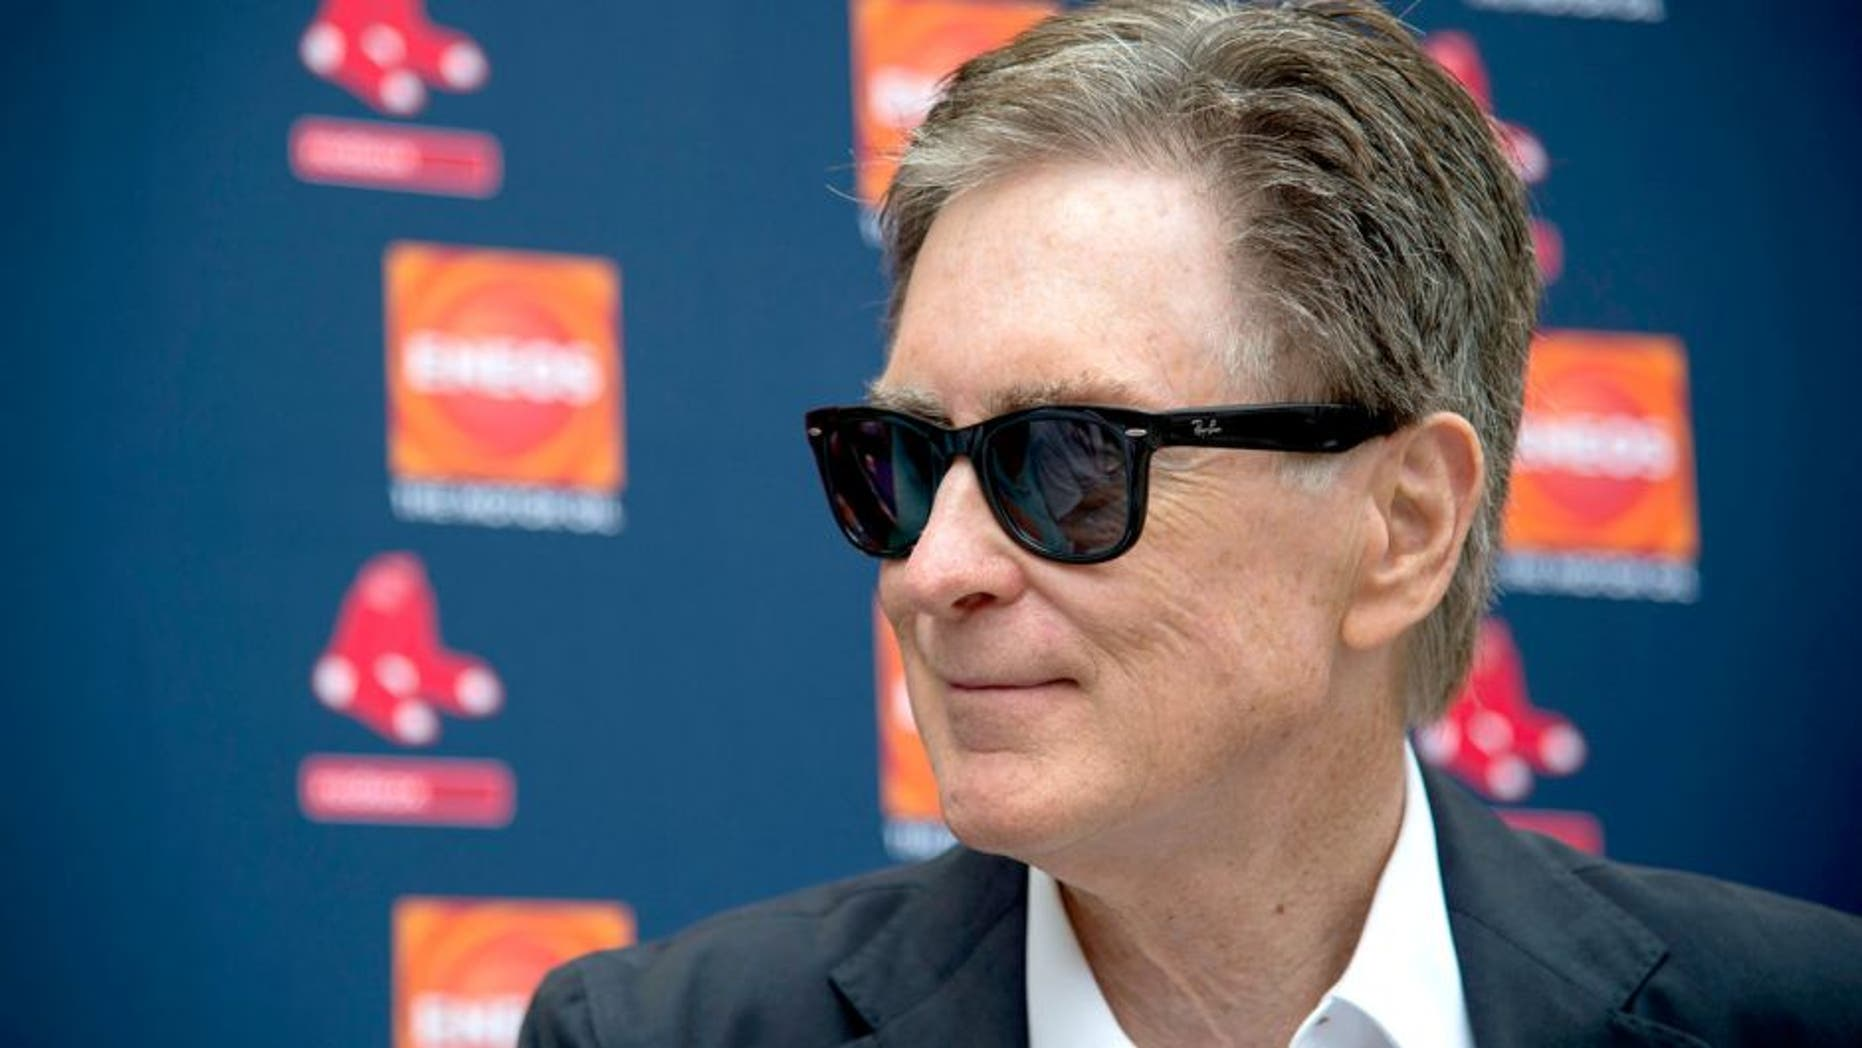 FT. MYERS, FL - FEBRUARY 24: Boston Red Sox Principal Owner John Henry speaks with media following the teams first full team workout on February 24, 2016 at Fenway South in Fort Myers, Florida . (Photo by Michael Ivins/Boston Red Sox/Getty Images)